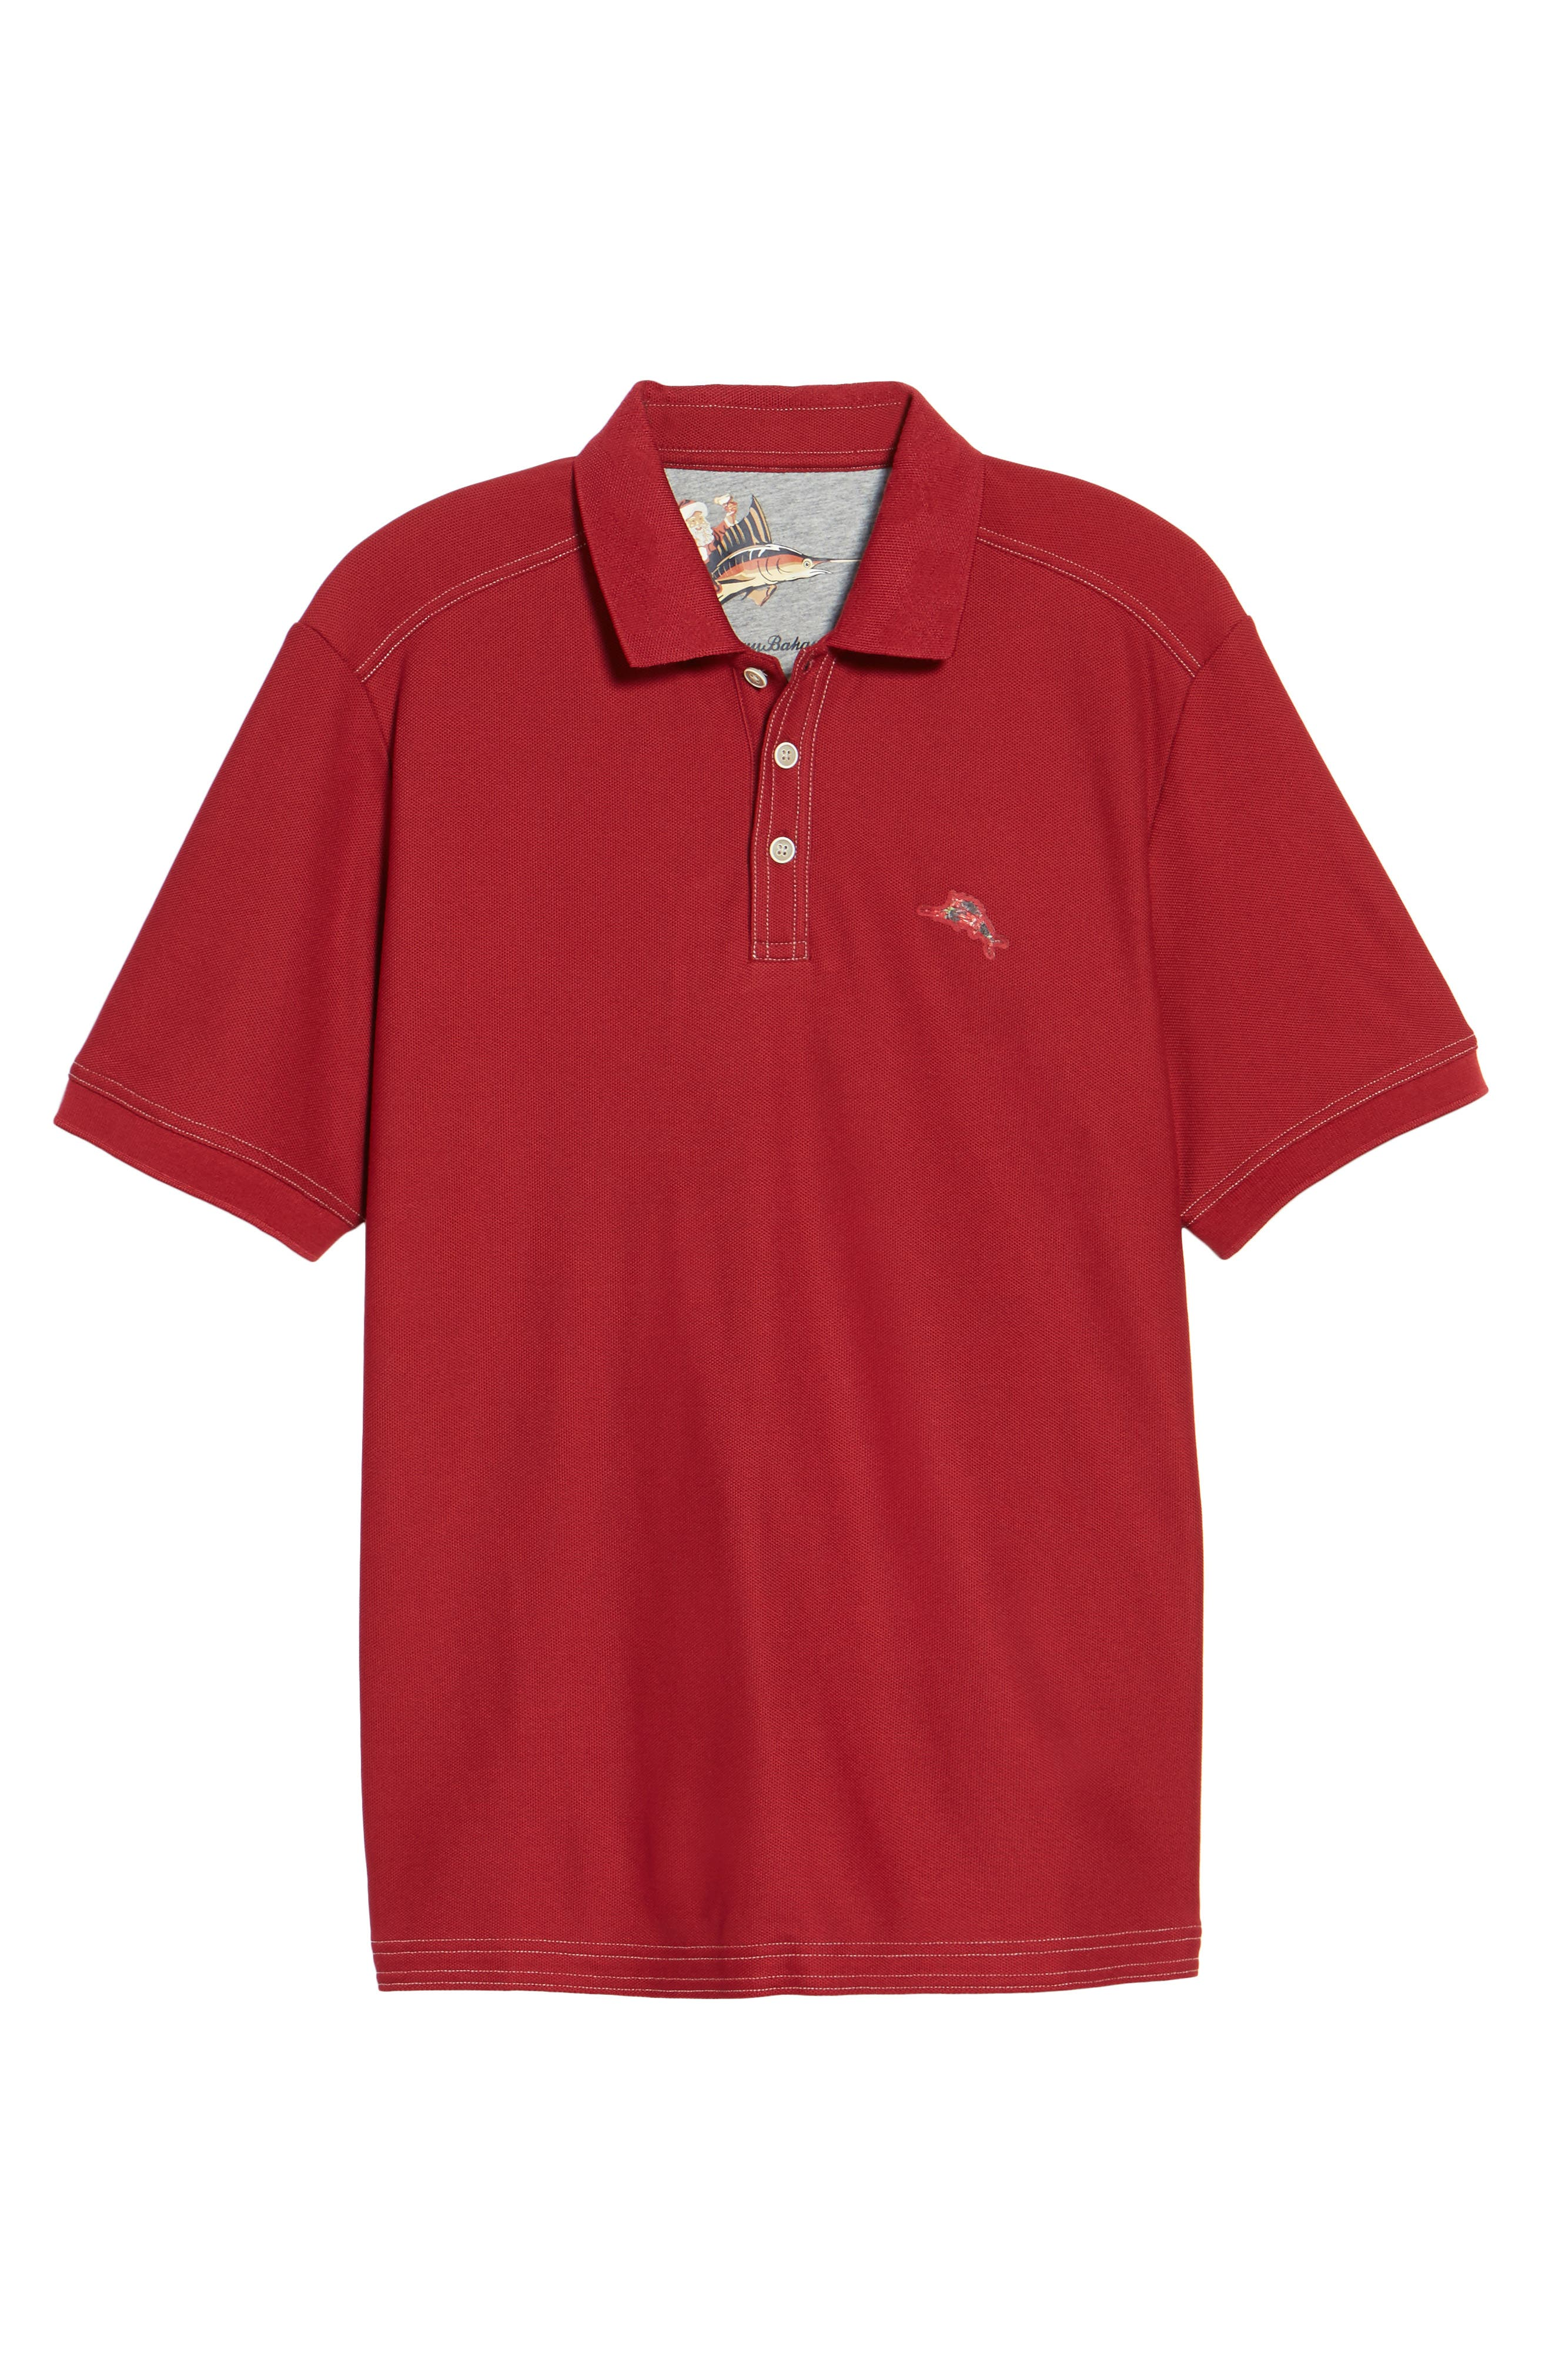 Alternate Image 6  - Tommy Bahama Limited Edition Poinsettia Emfielder Piqué Polo